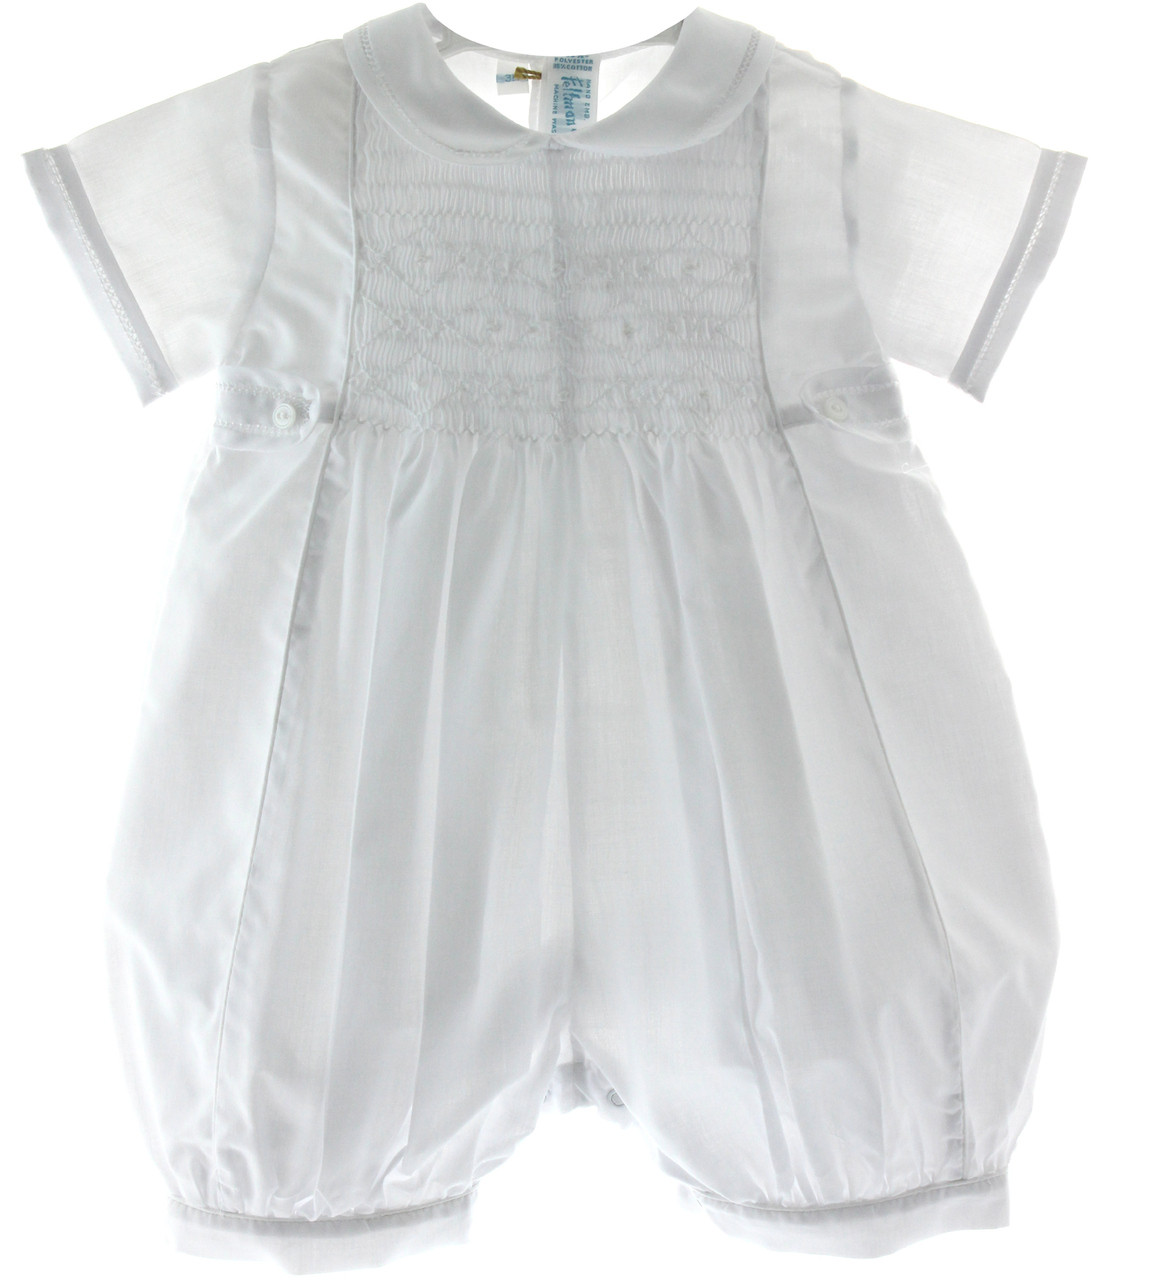 boys classic white christening outfit with smocking